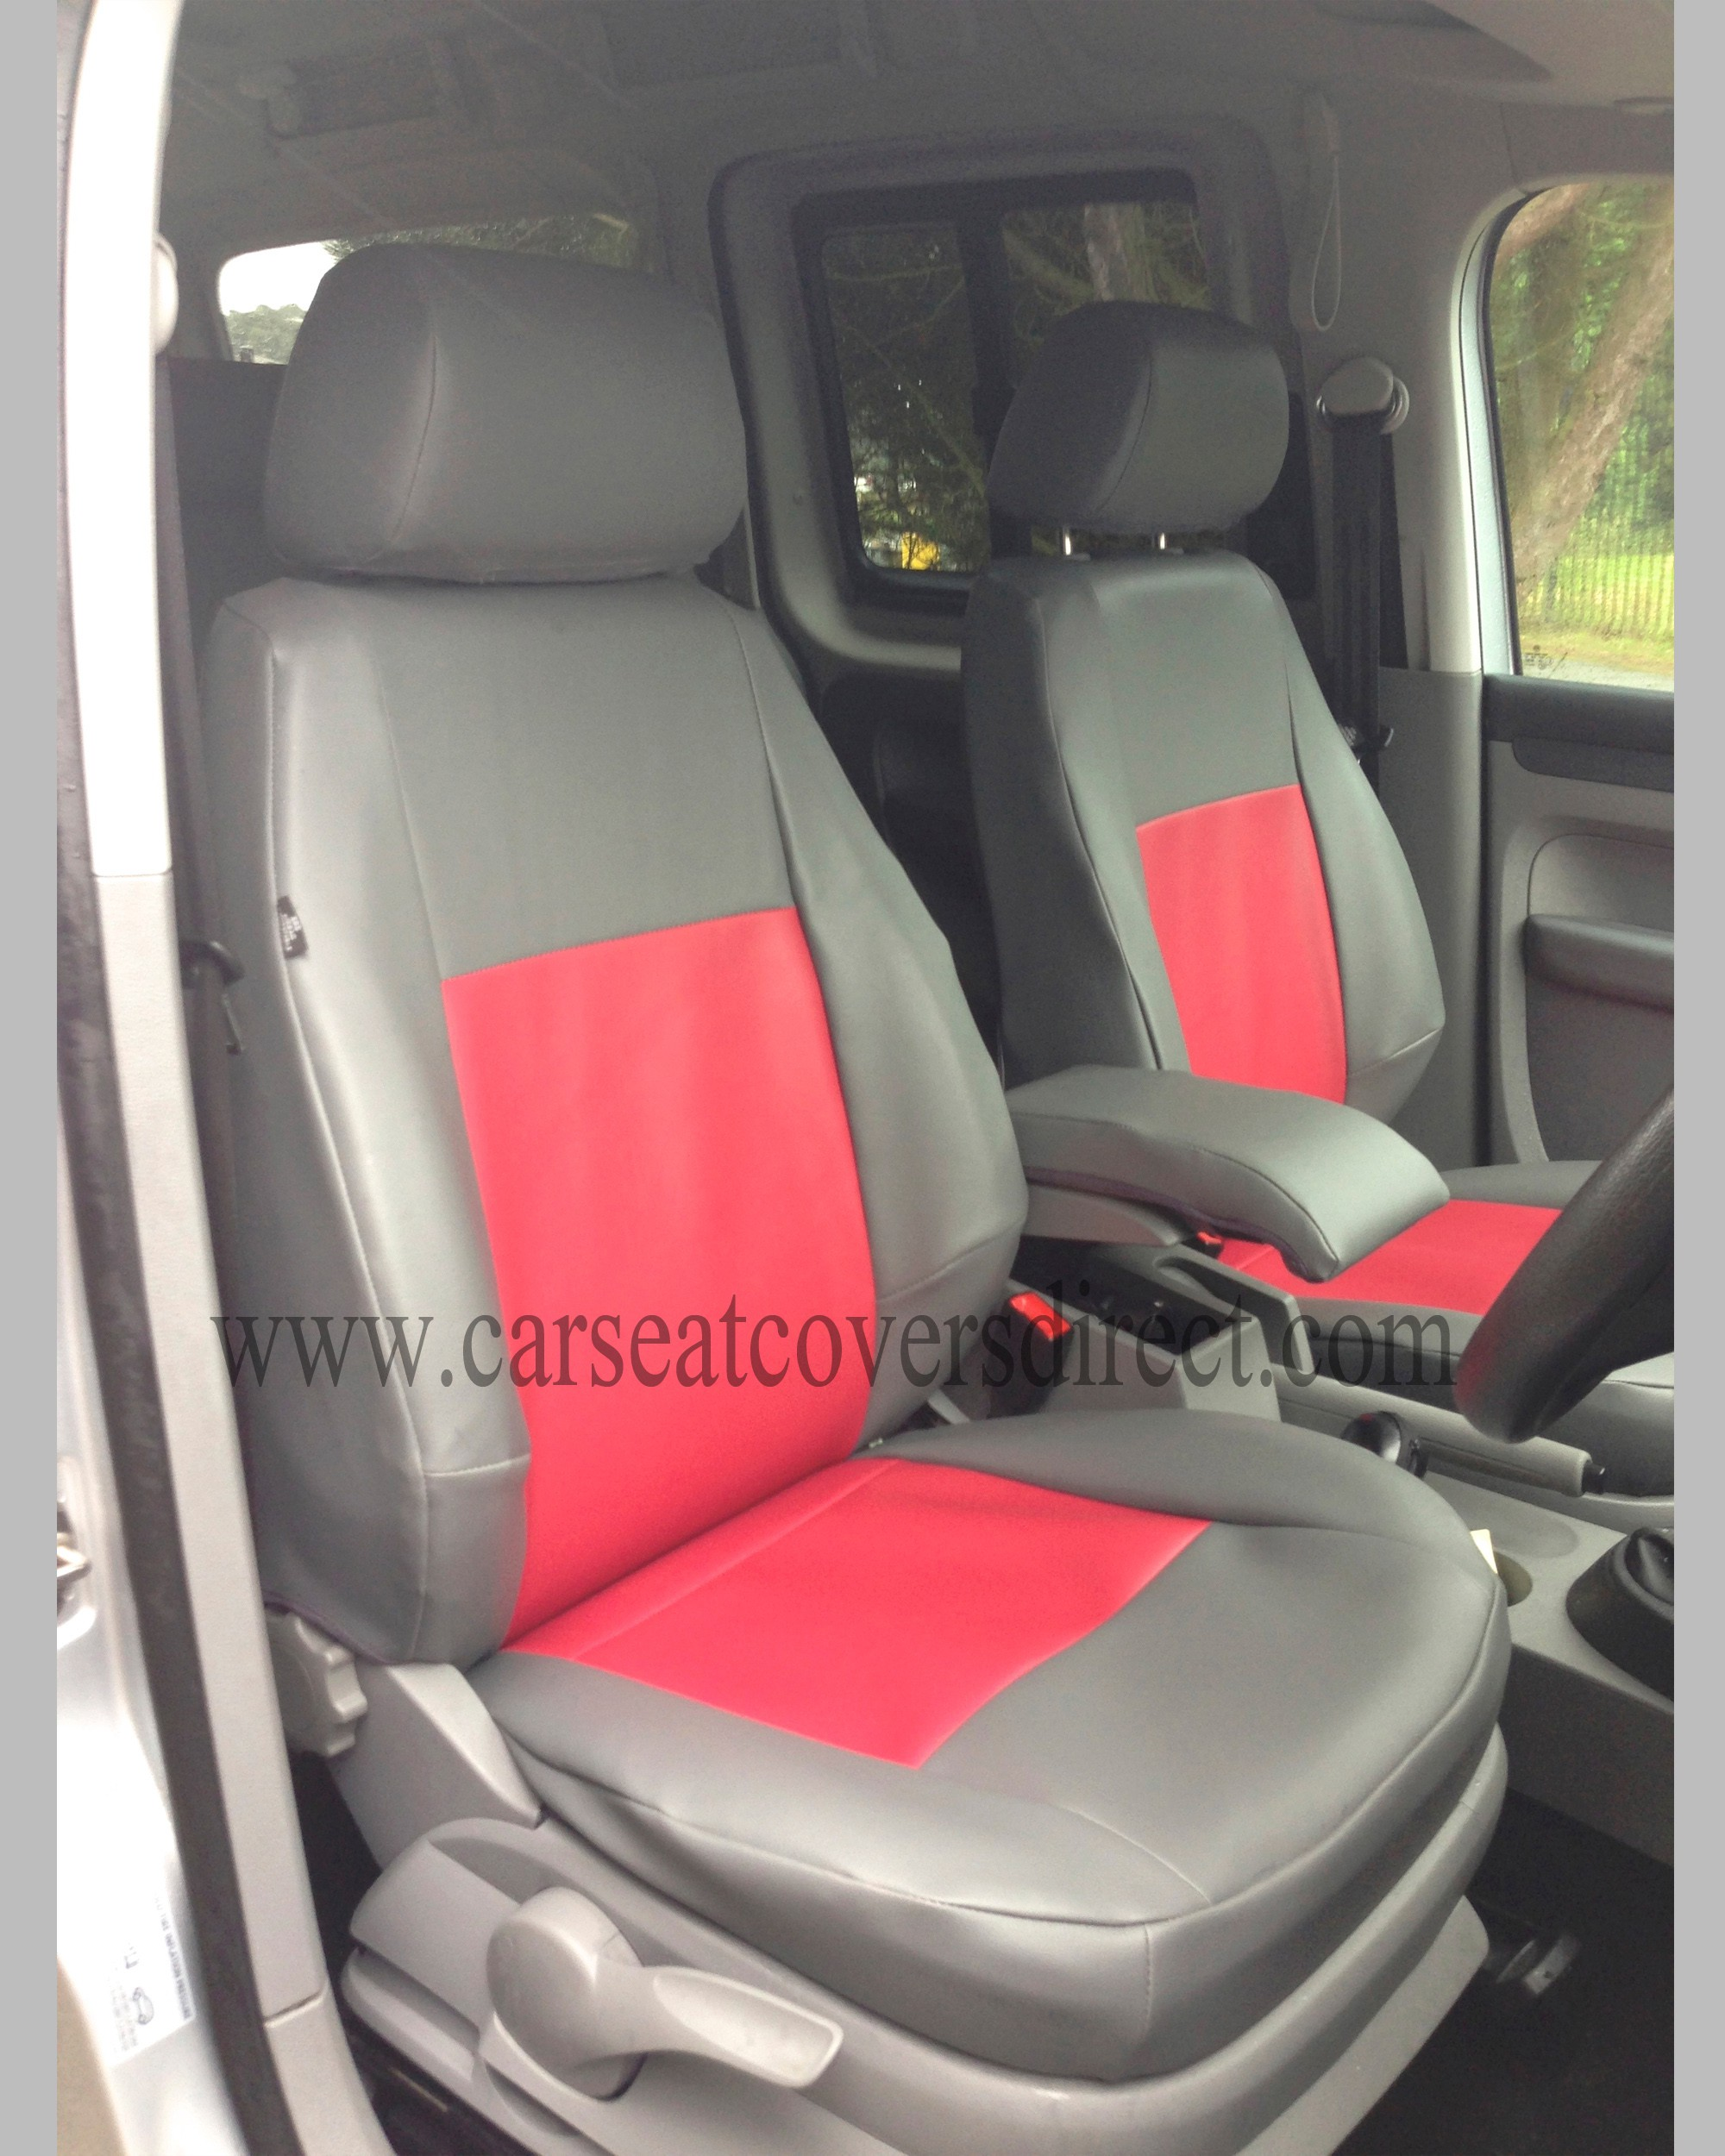 VOLKSWAGEN VW Caddy Life Grey Amp Red Seat Covers Car Seat